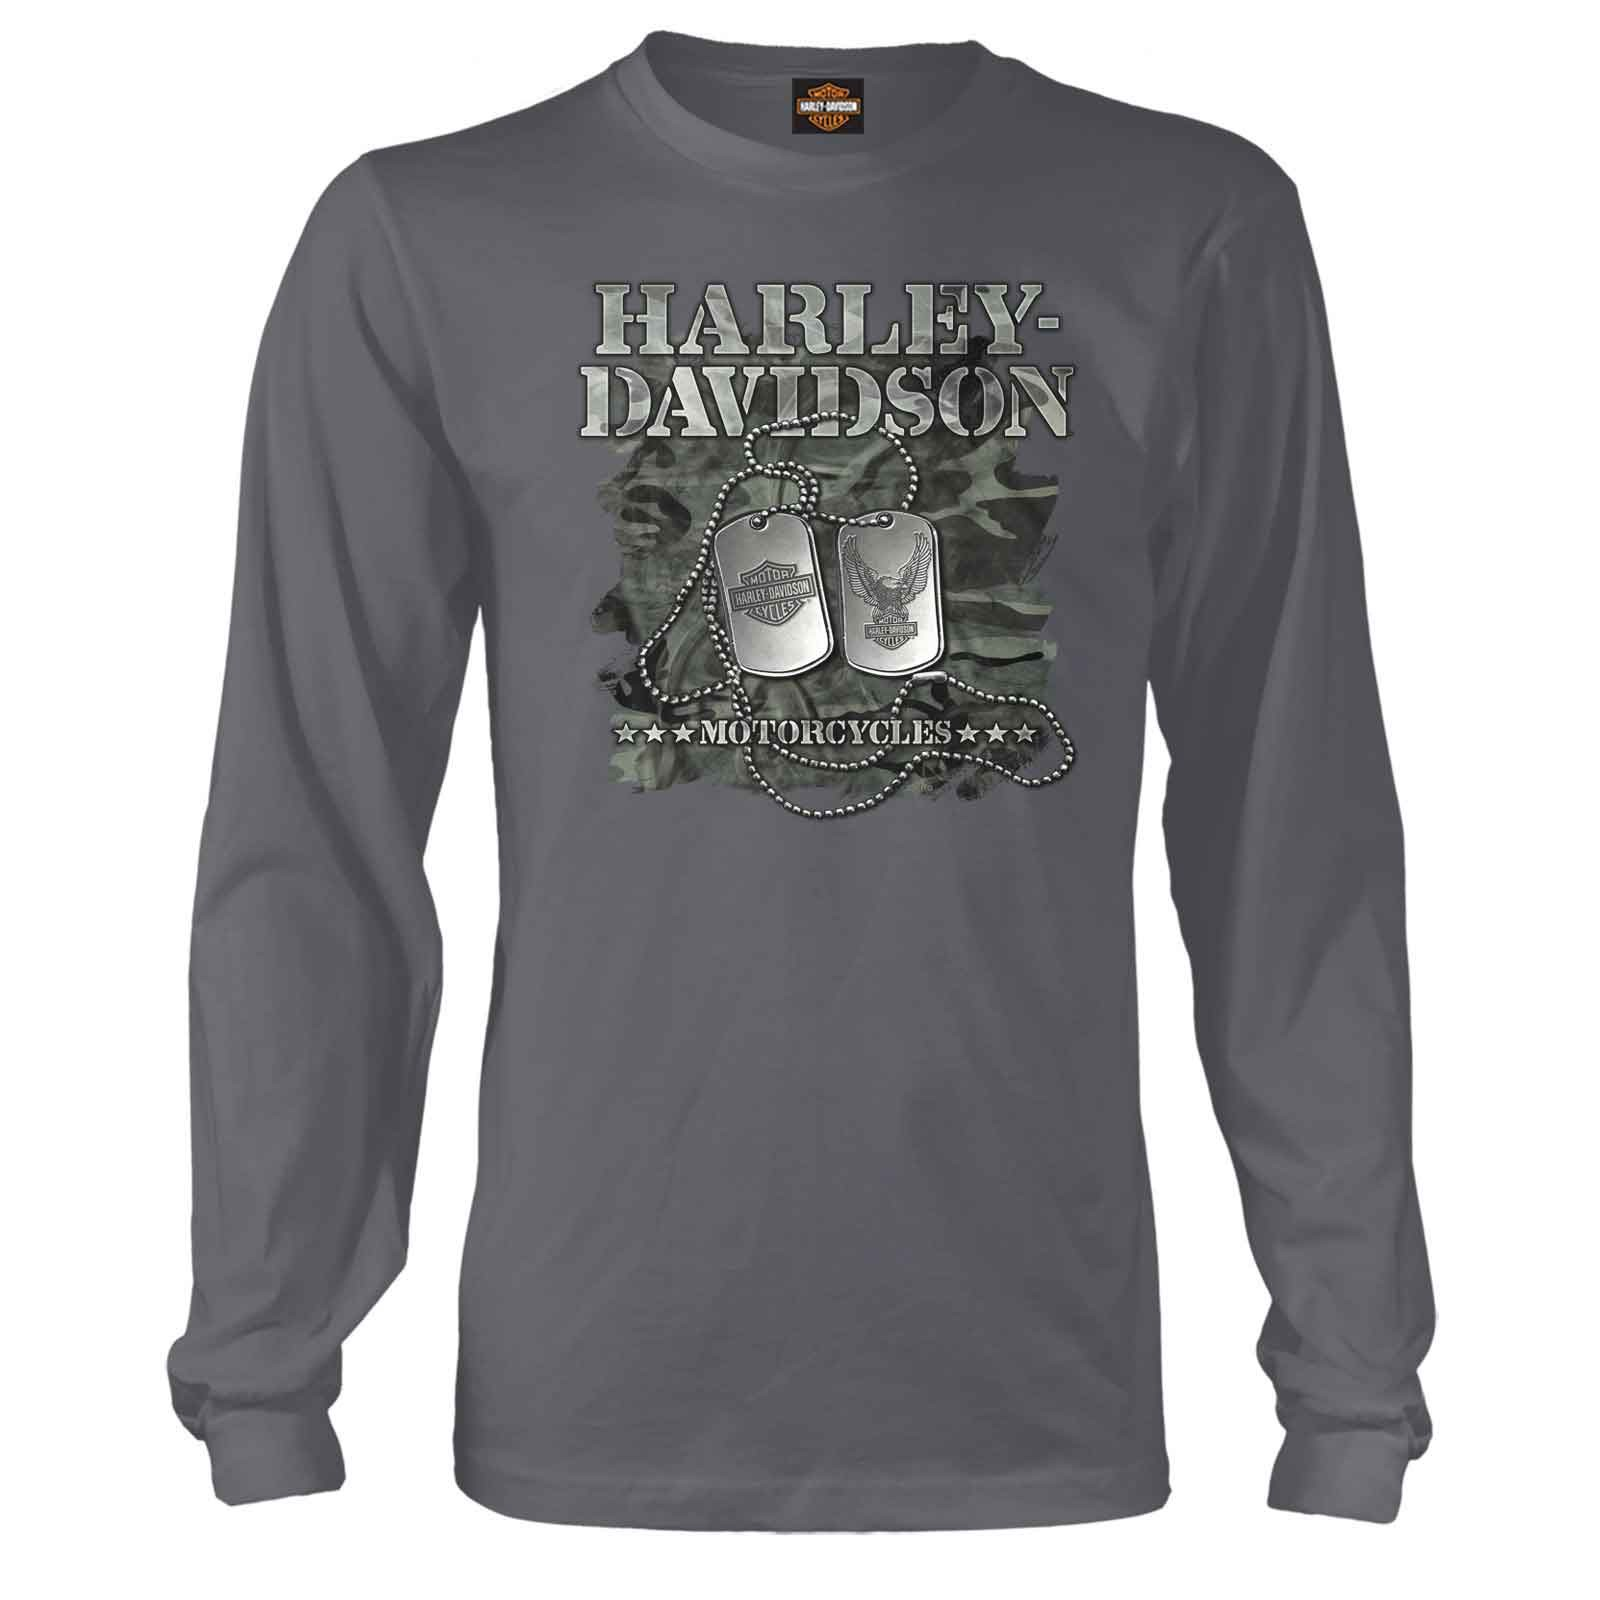 Harley-Davidson Men's Long-Sleeve T-Shirt - Military Dog Tags | Overseas Tour